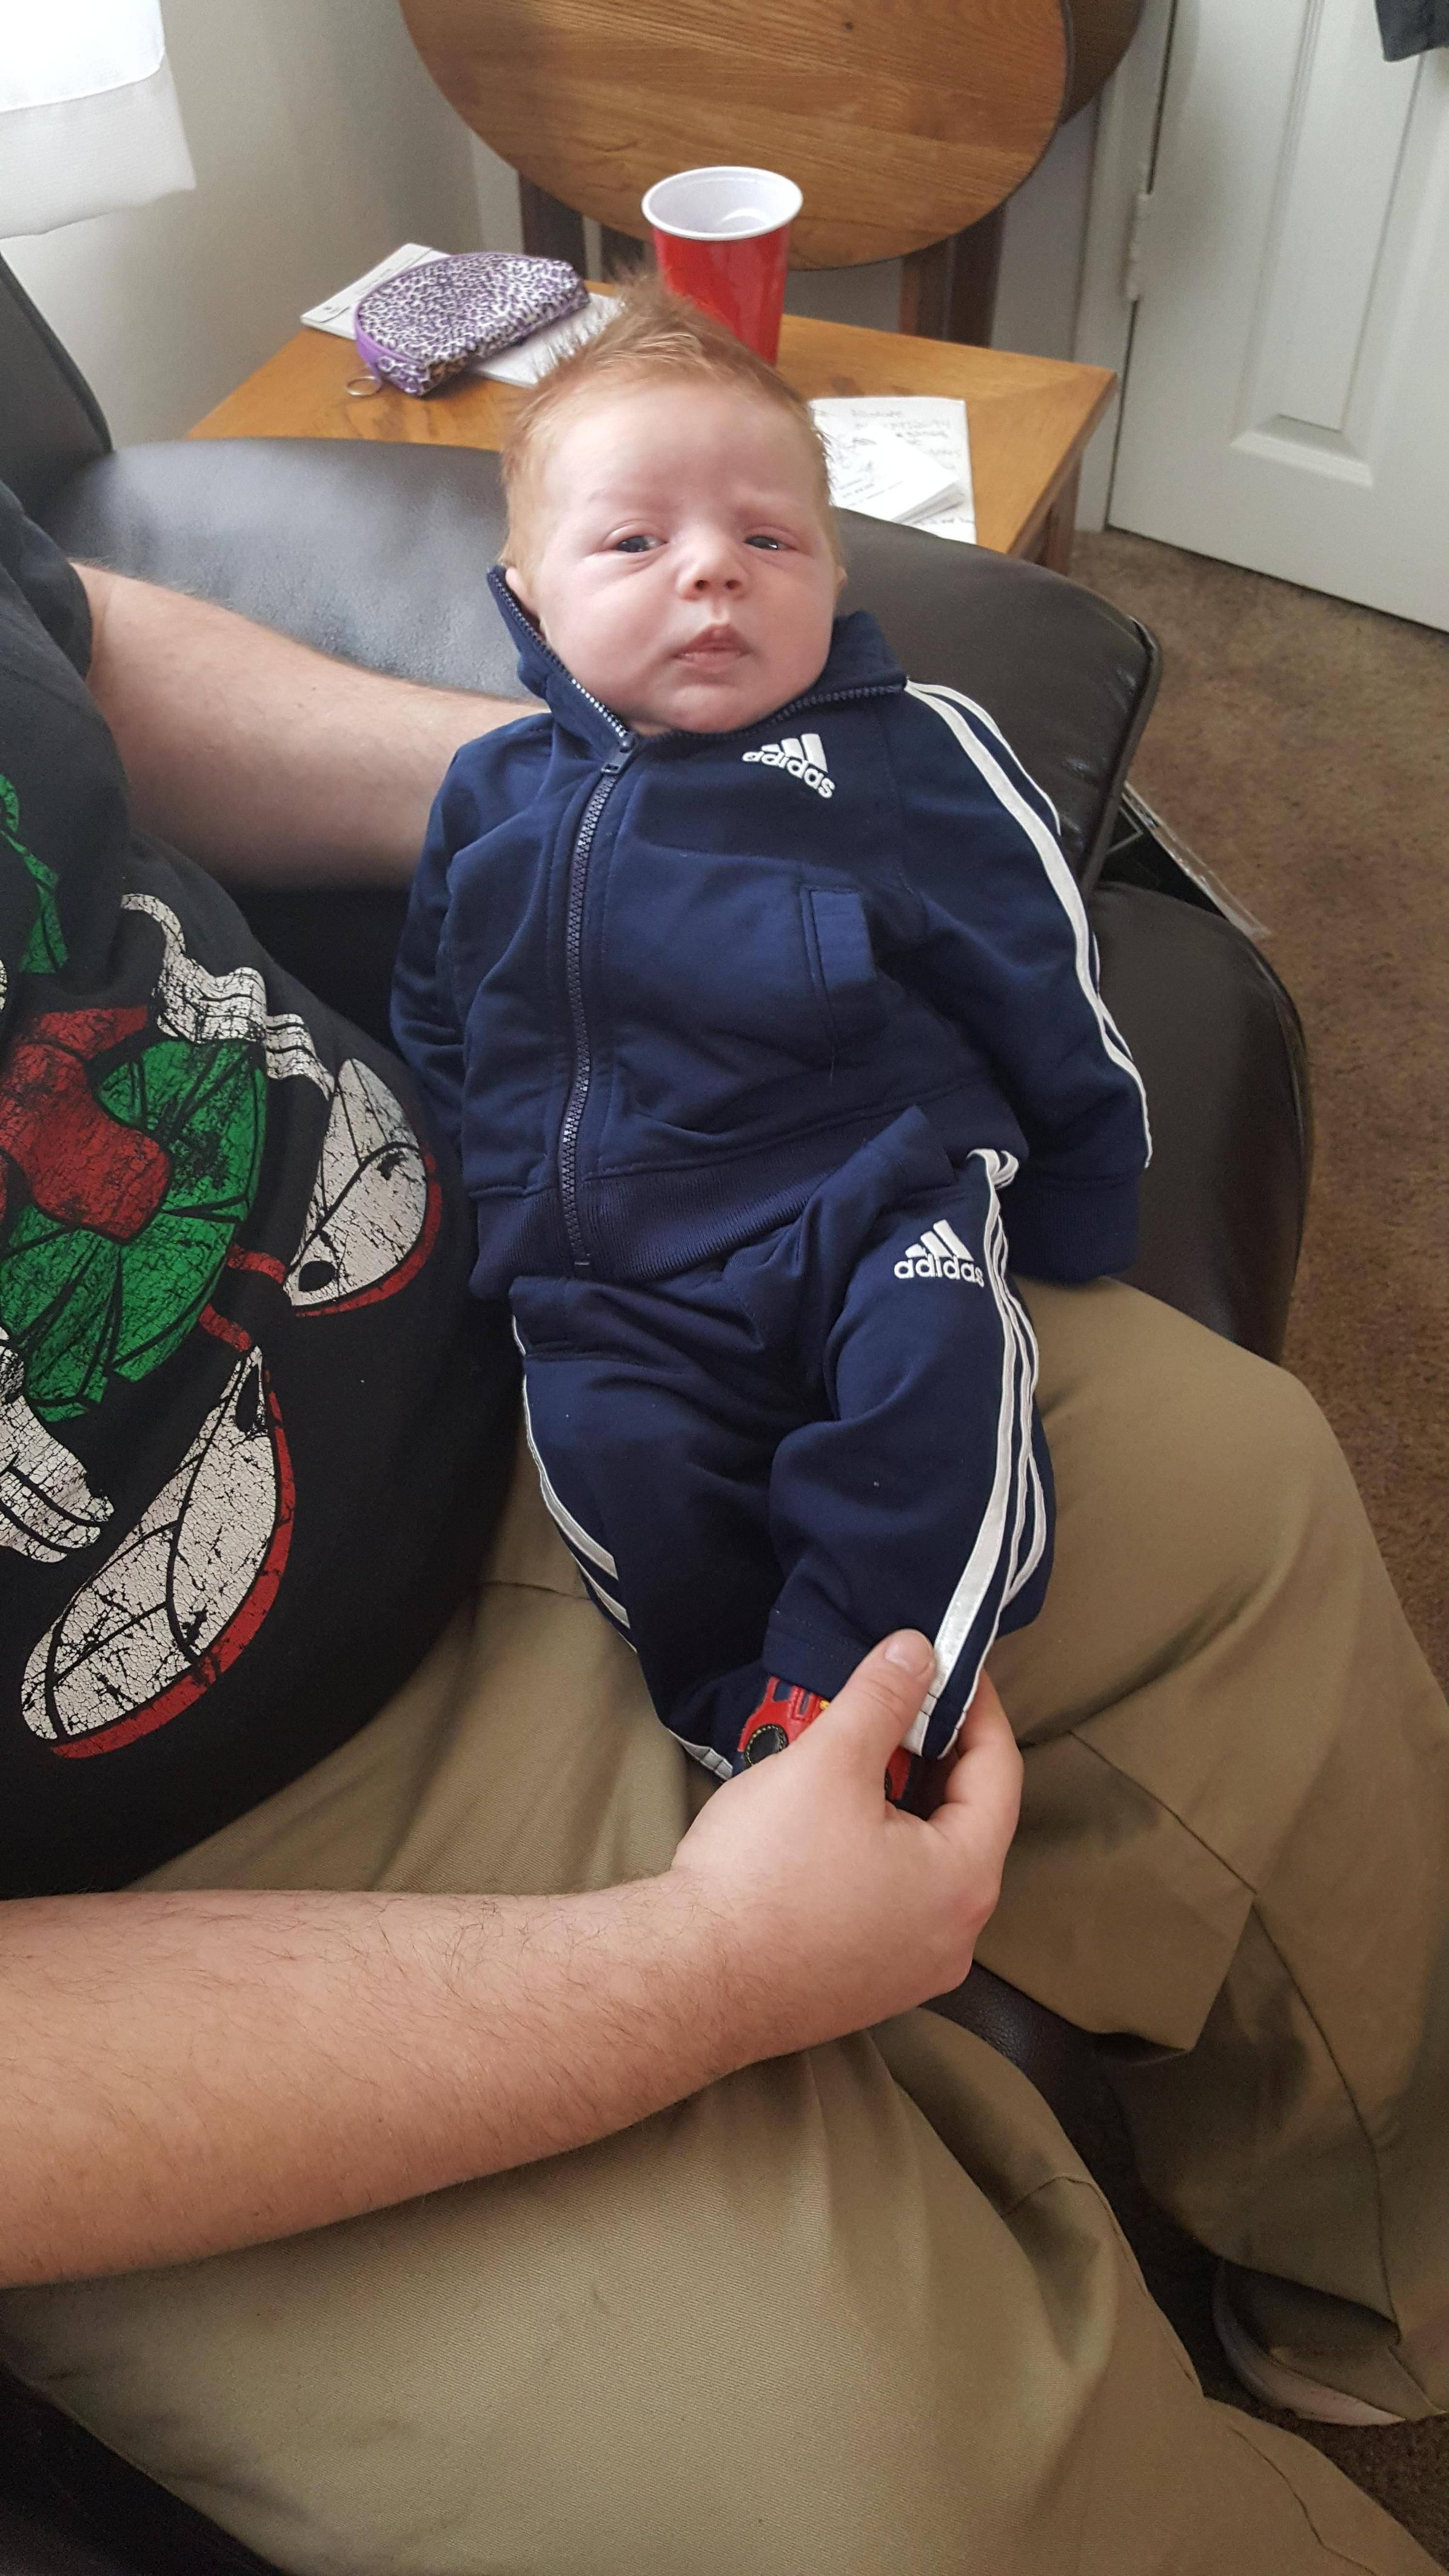 My Russian In-laws bought my newborn an outfit... not even remotely surprised